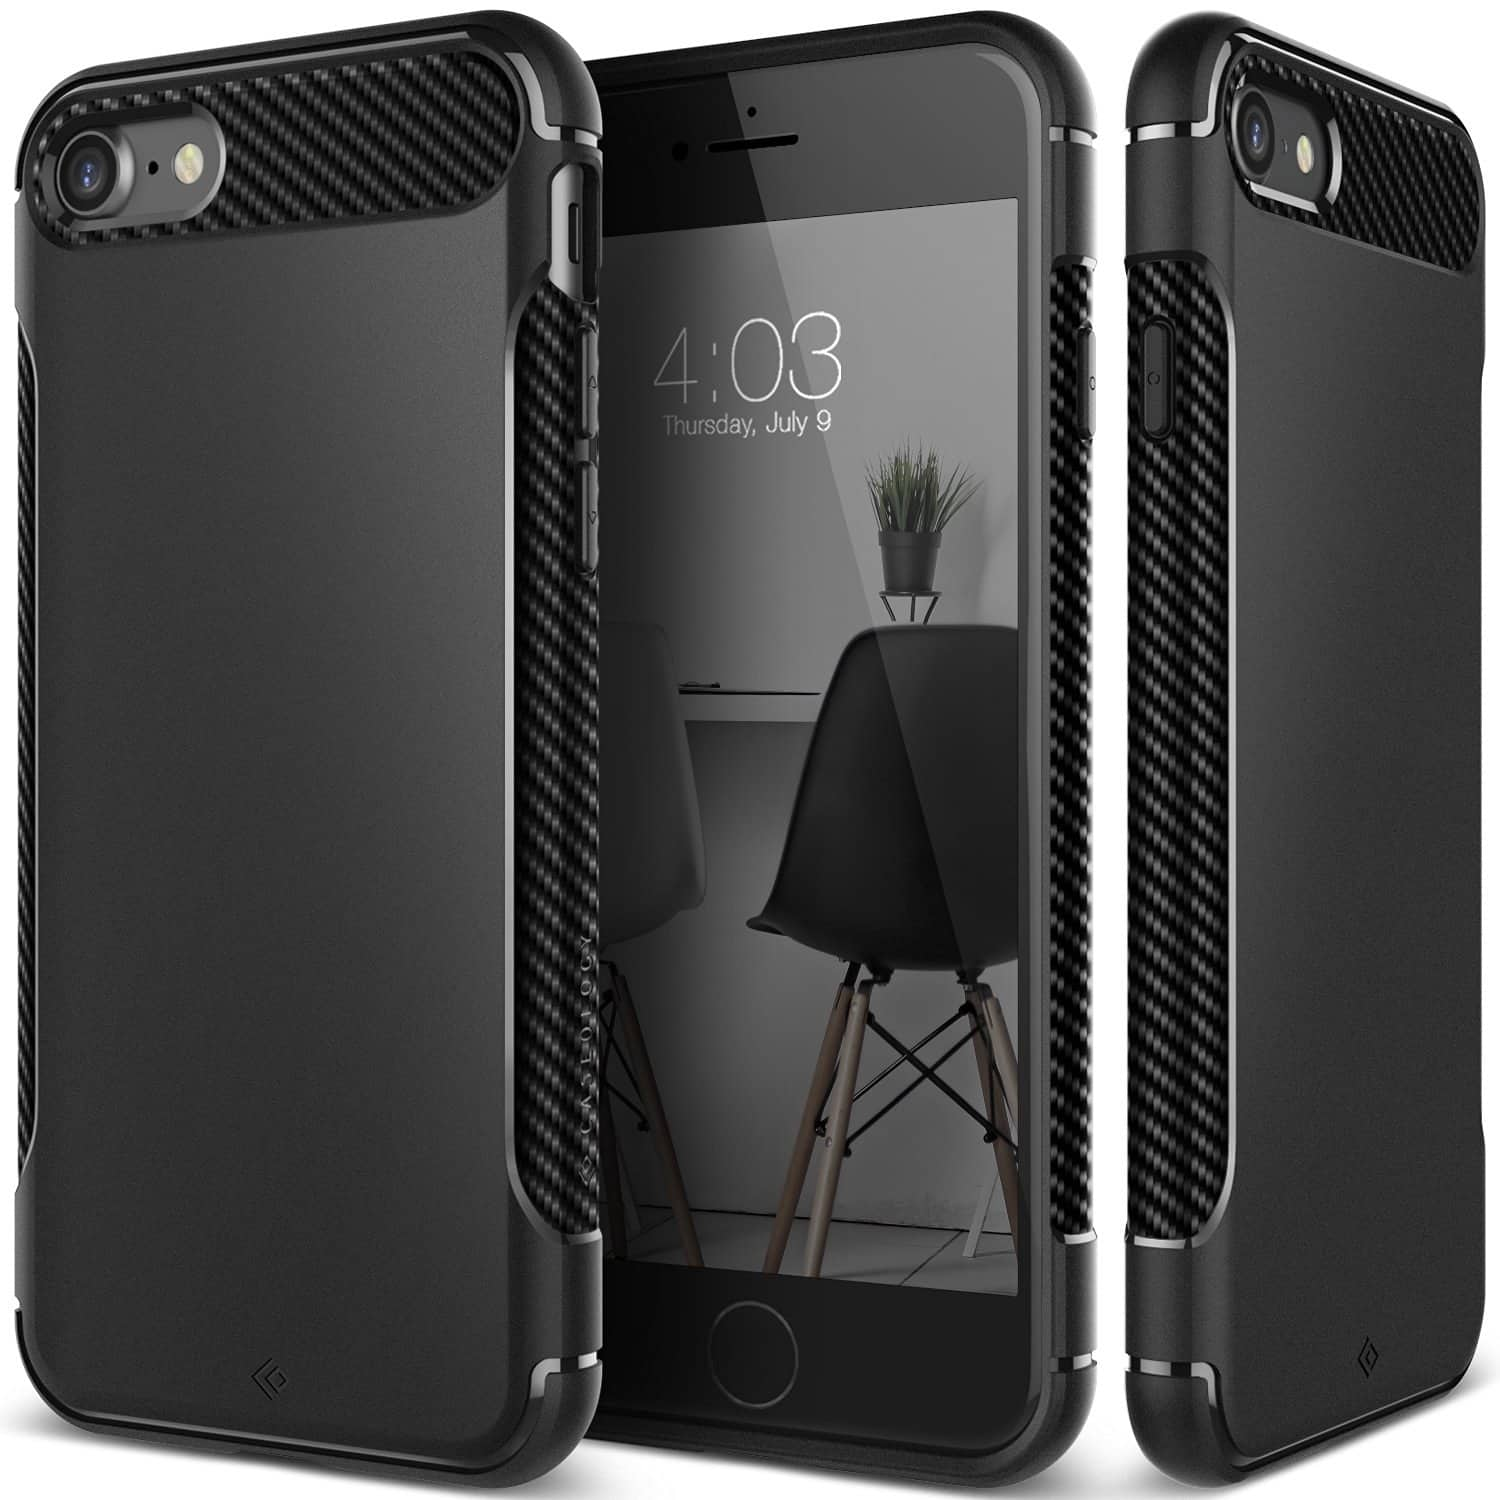 Caseology Apple iPhone 7/7 Plus Case Sale  from $4